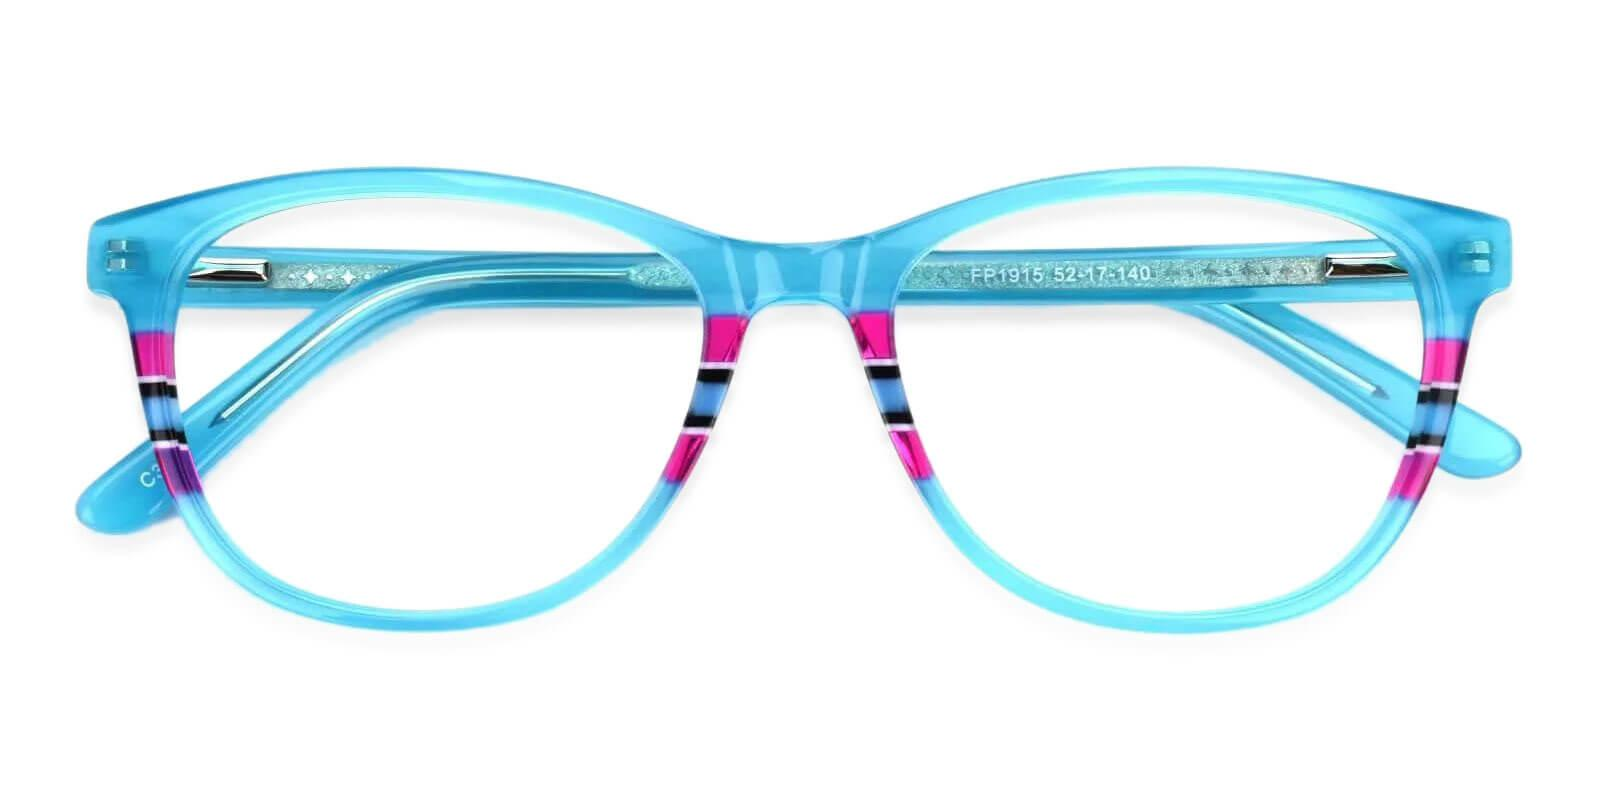 Vltava Green Acetate Eyeglasses , UniversalBridgeFit Frames from ABBE Glasses